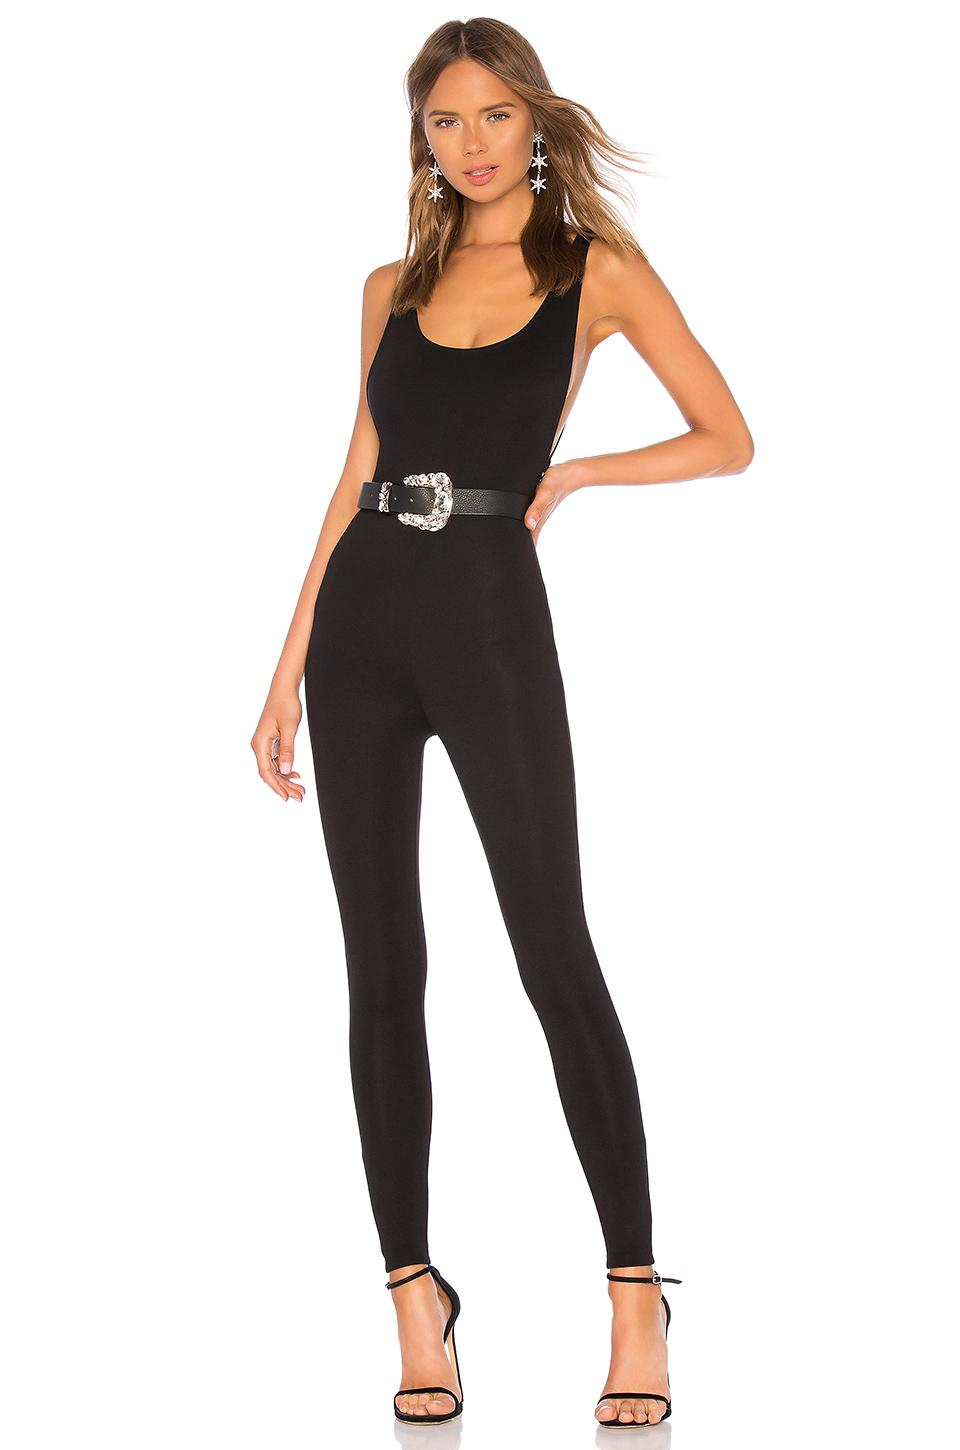 Lpa Catsuit 23 In Black